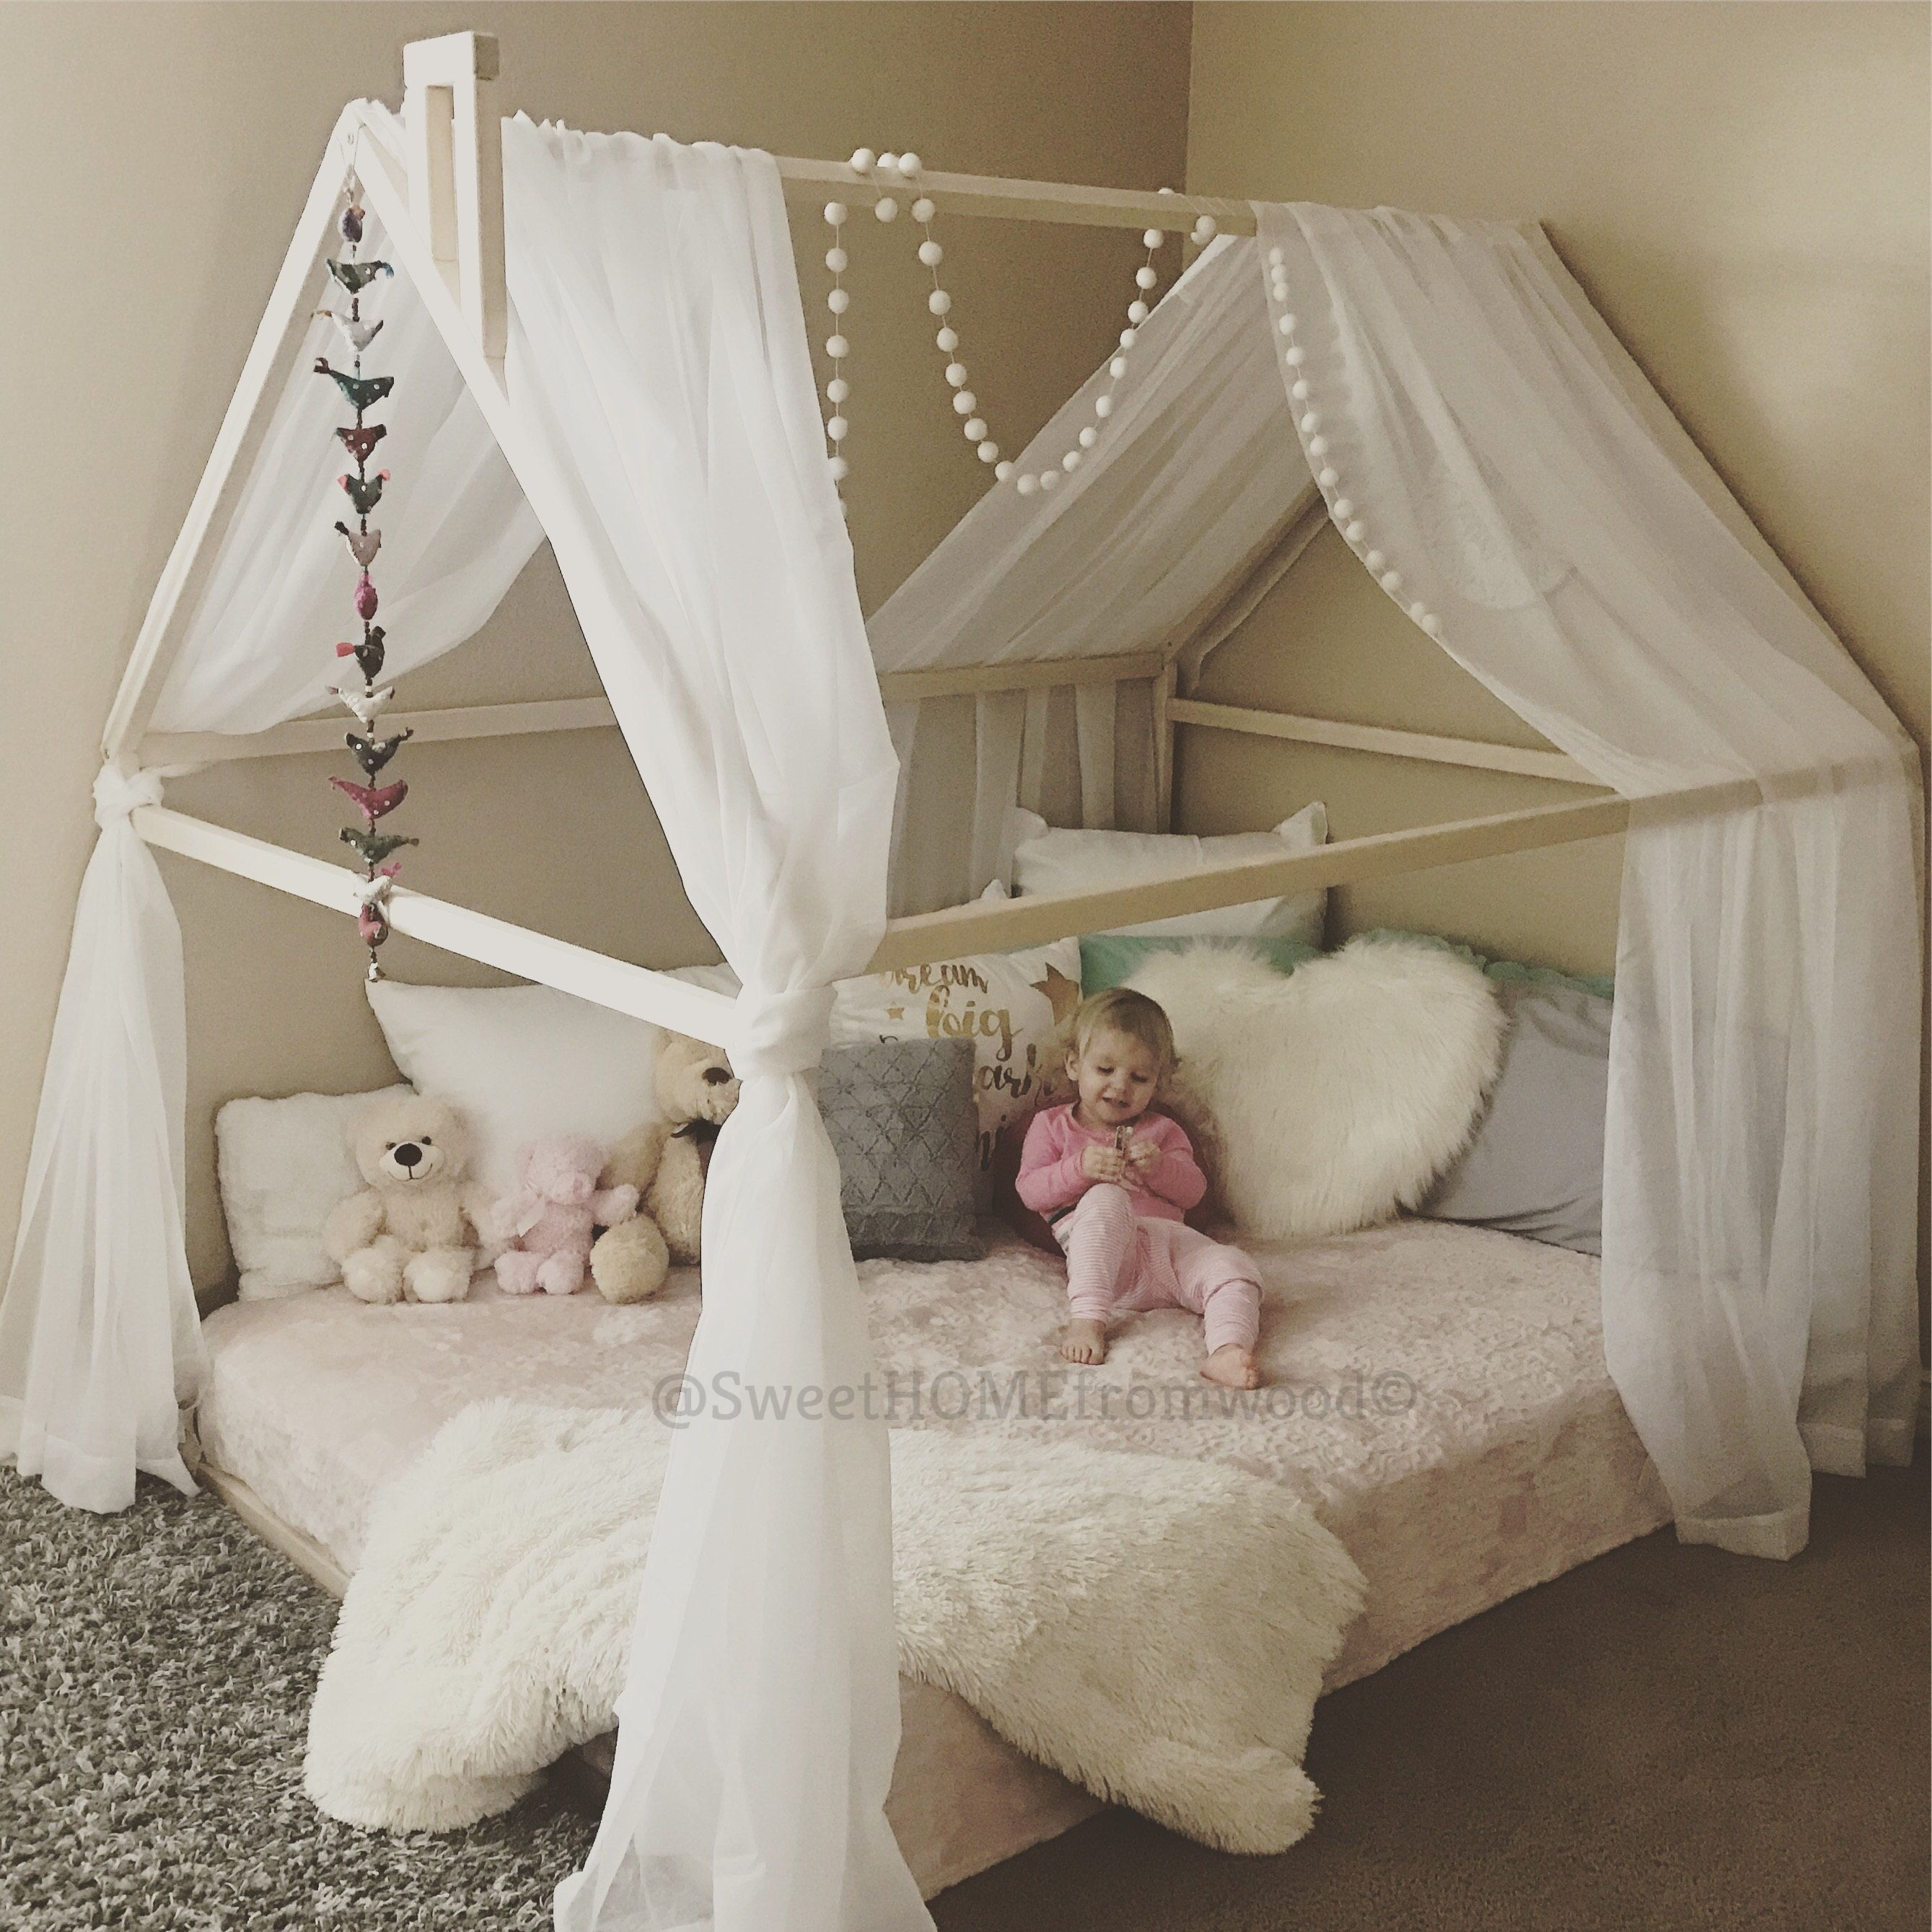 Toddler bed house bed tent bed children bed wooden house wood  sc 1 st  Pinterest : toddler size bed tent - memphite.com